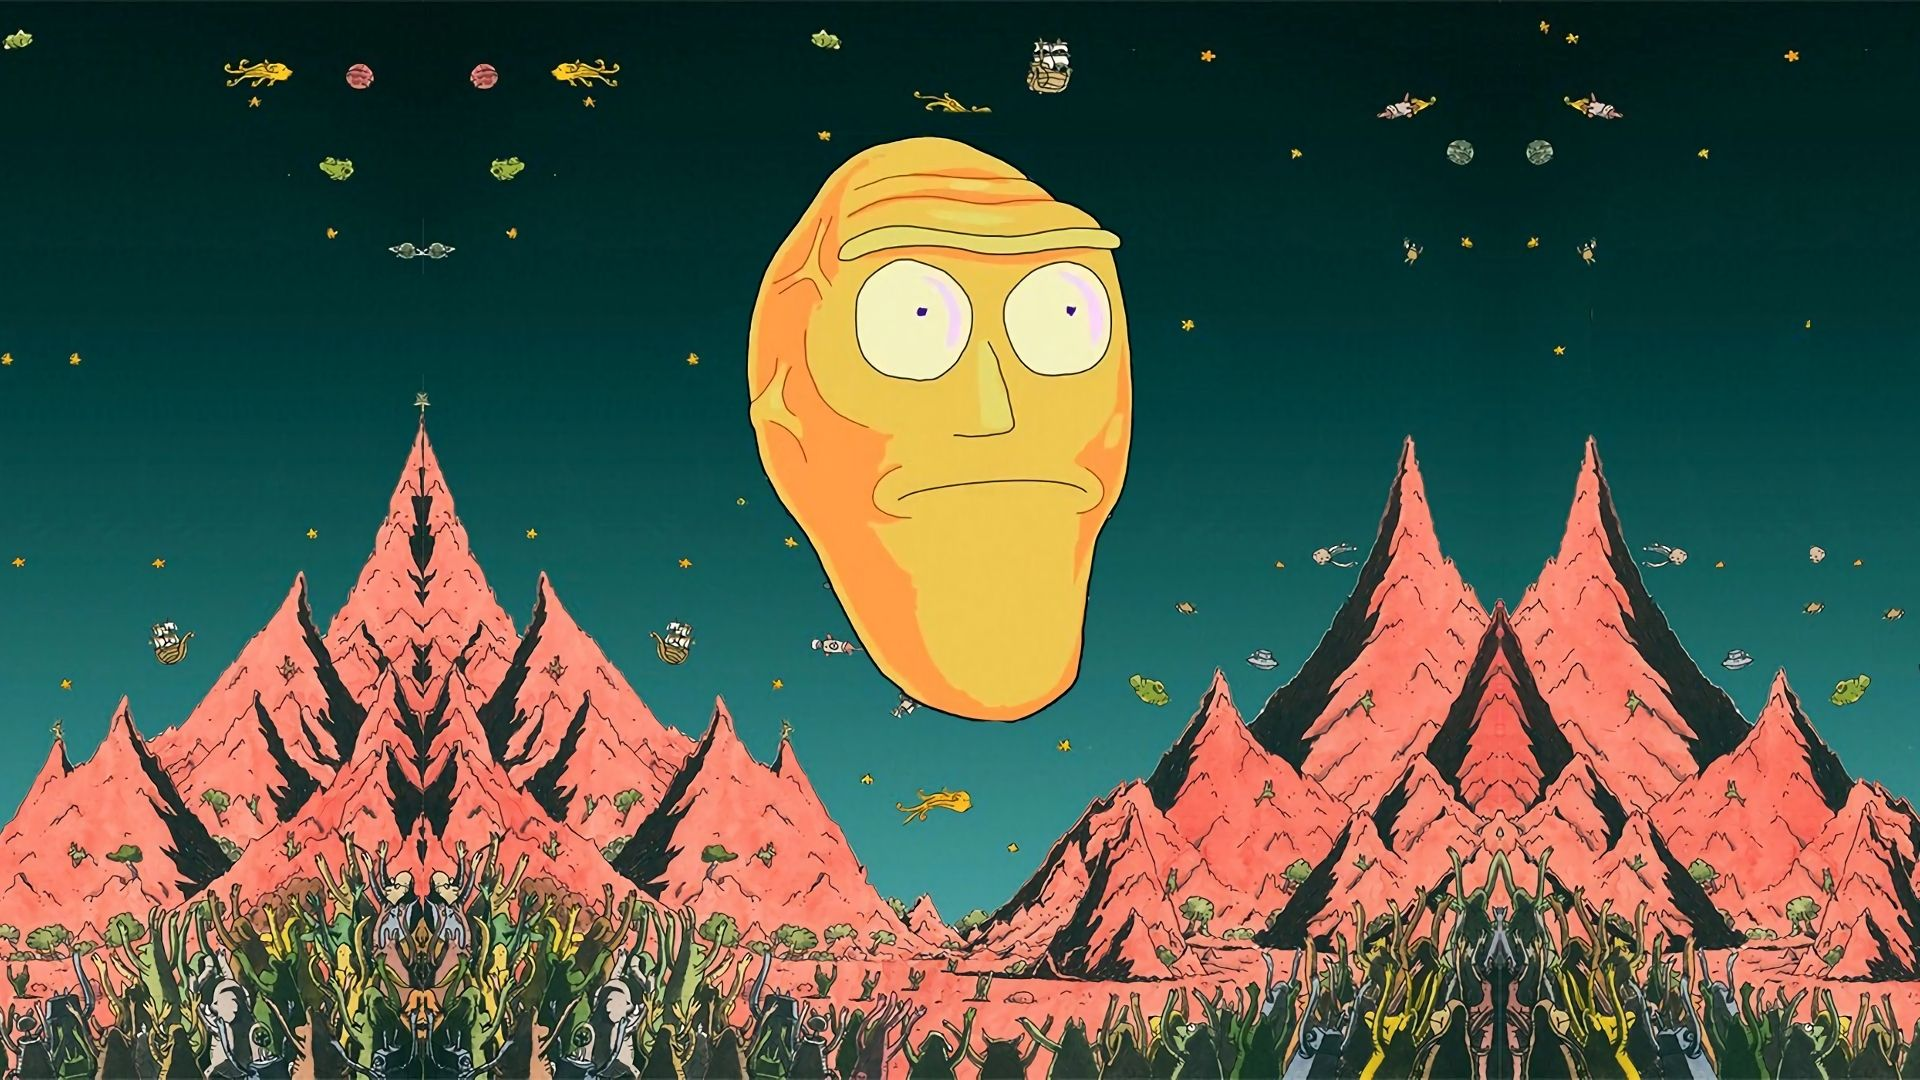 Rick And Morty Wallpaper Giant Heads Cartoon Wallpaper Macbook